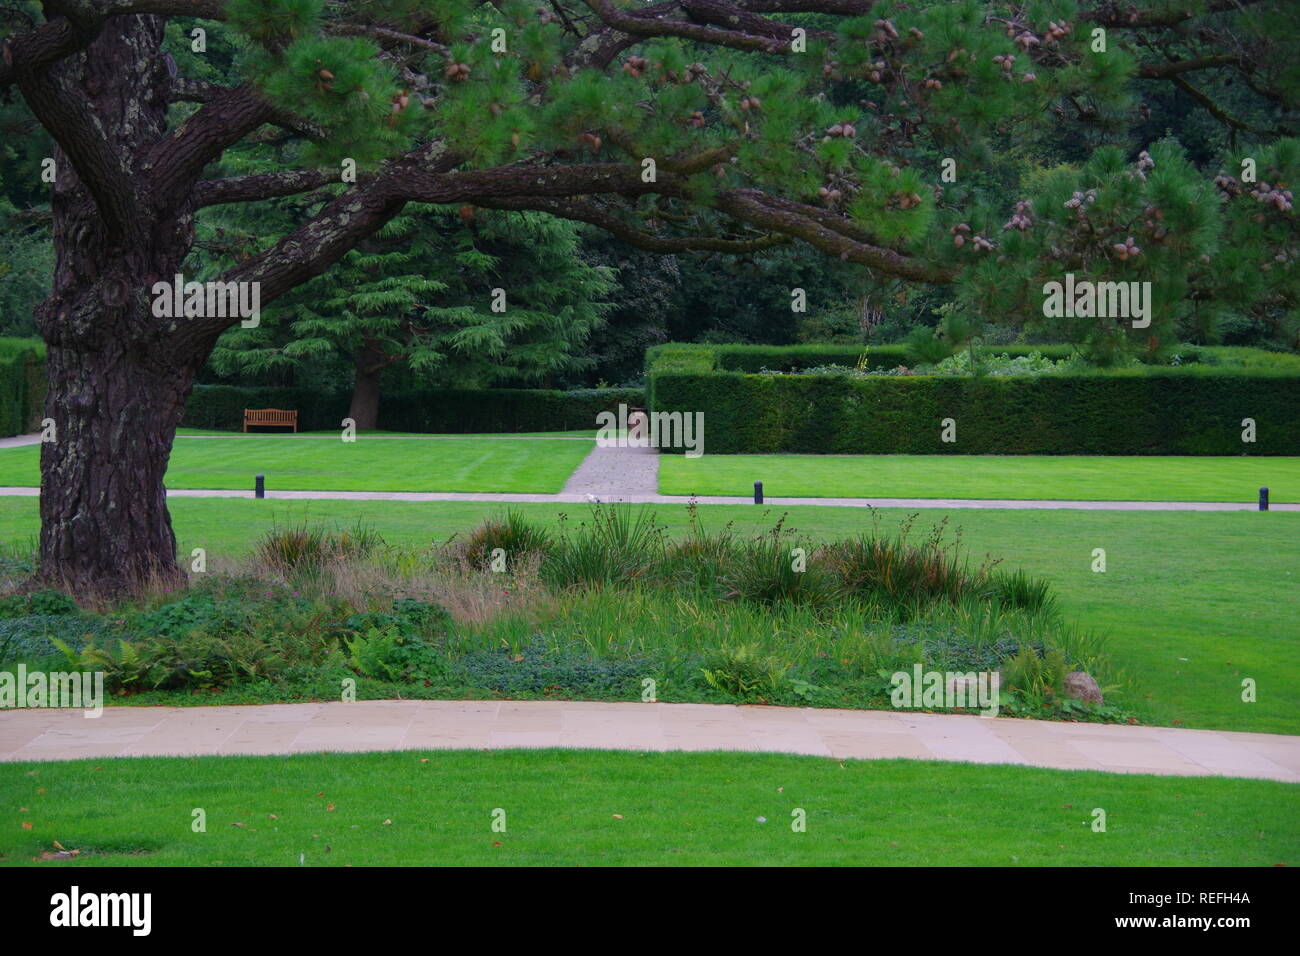 The Lawn at Buckfast Abbey, Under a mighty Pine Tree. Dartmoor National Park, Devon, UK. - Stock Image